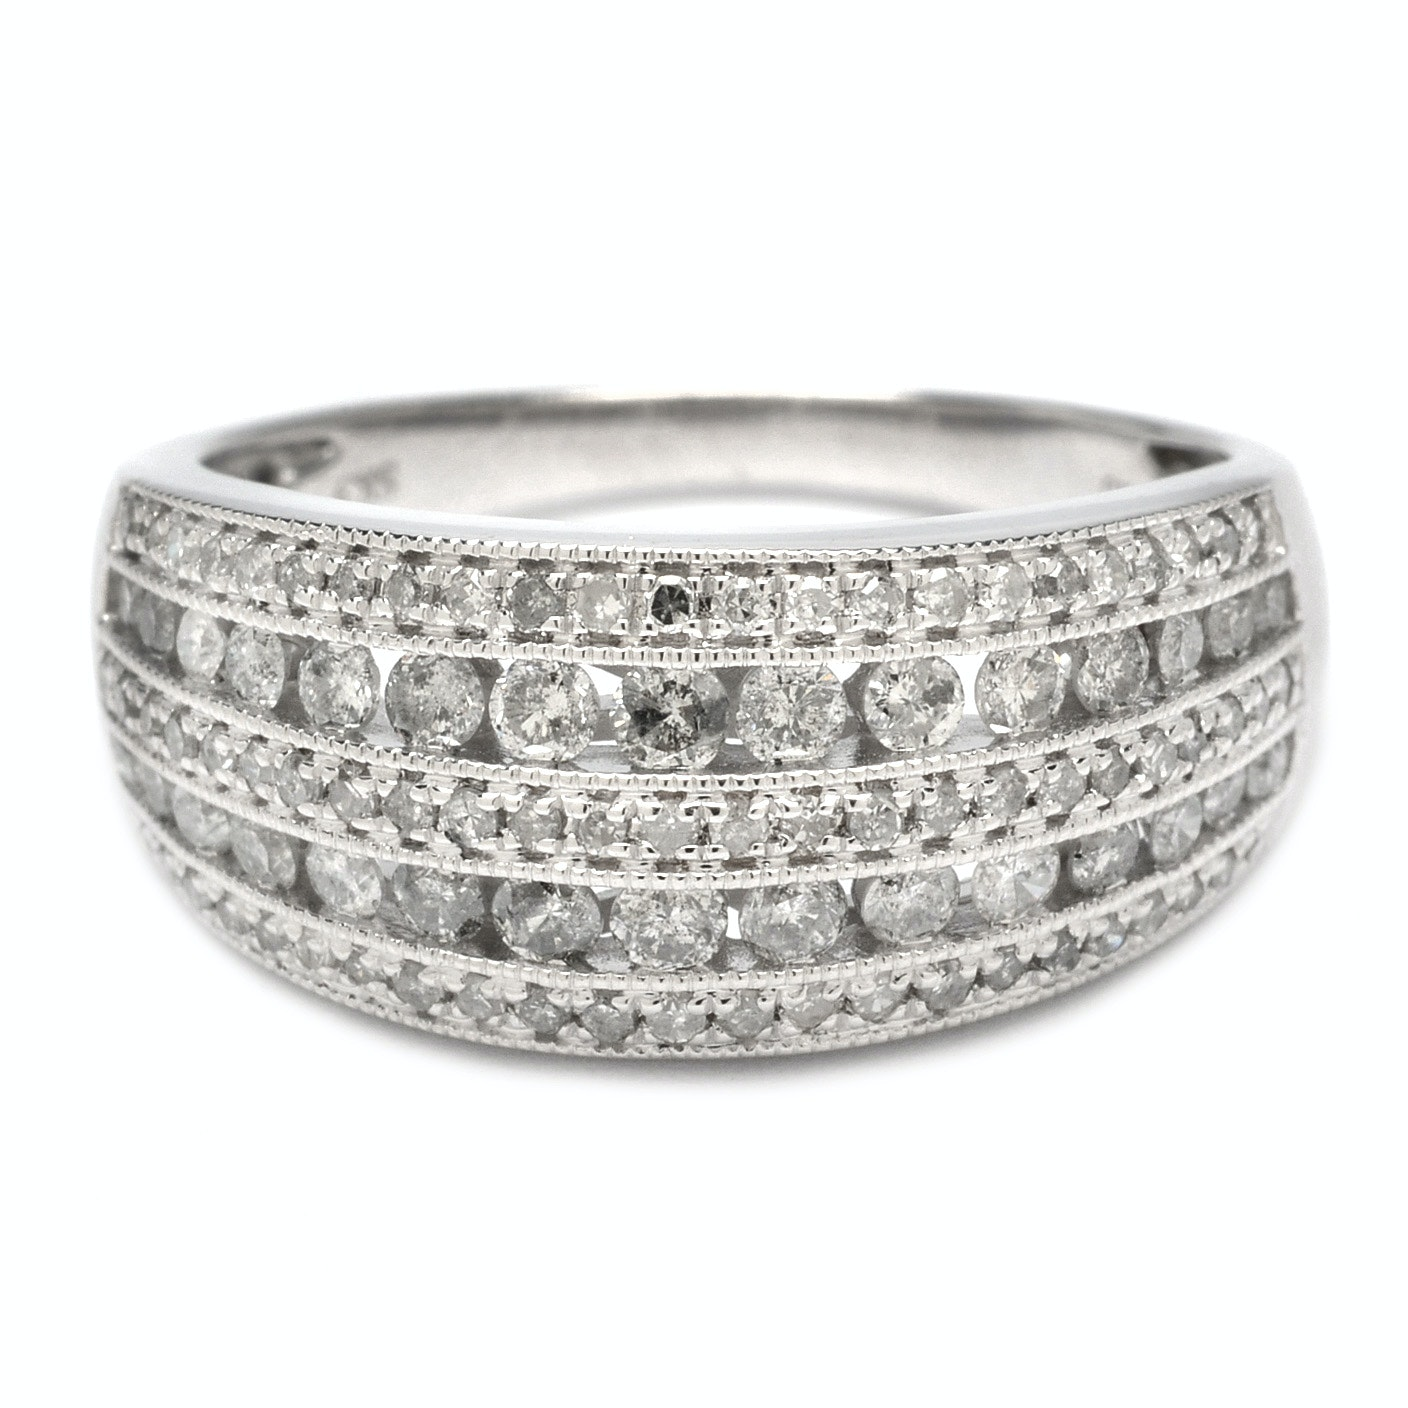 Sterling Silver and Diamond Ring Band